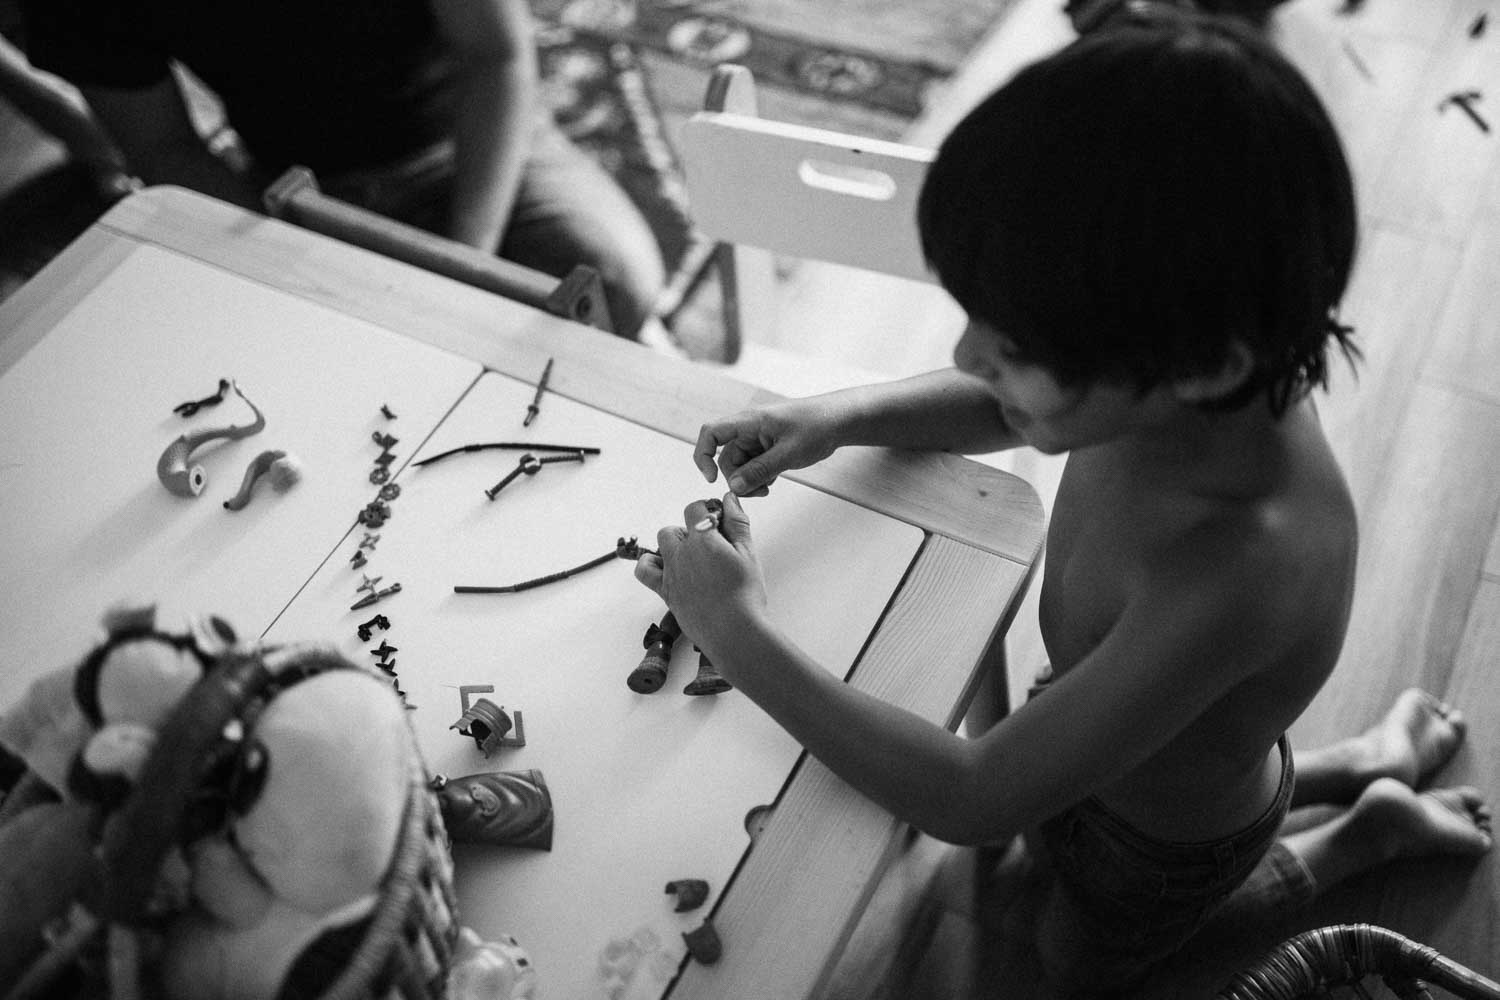 candid-black-and-white-photo-of-little-boy-playing-with-toys-ny-new-york-city